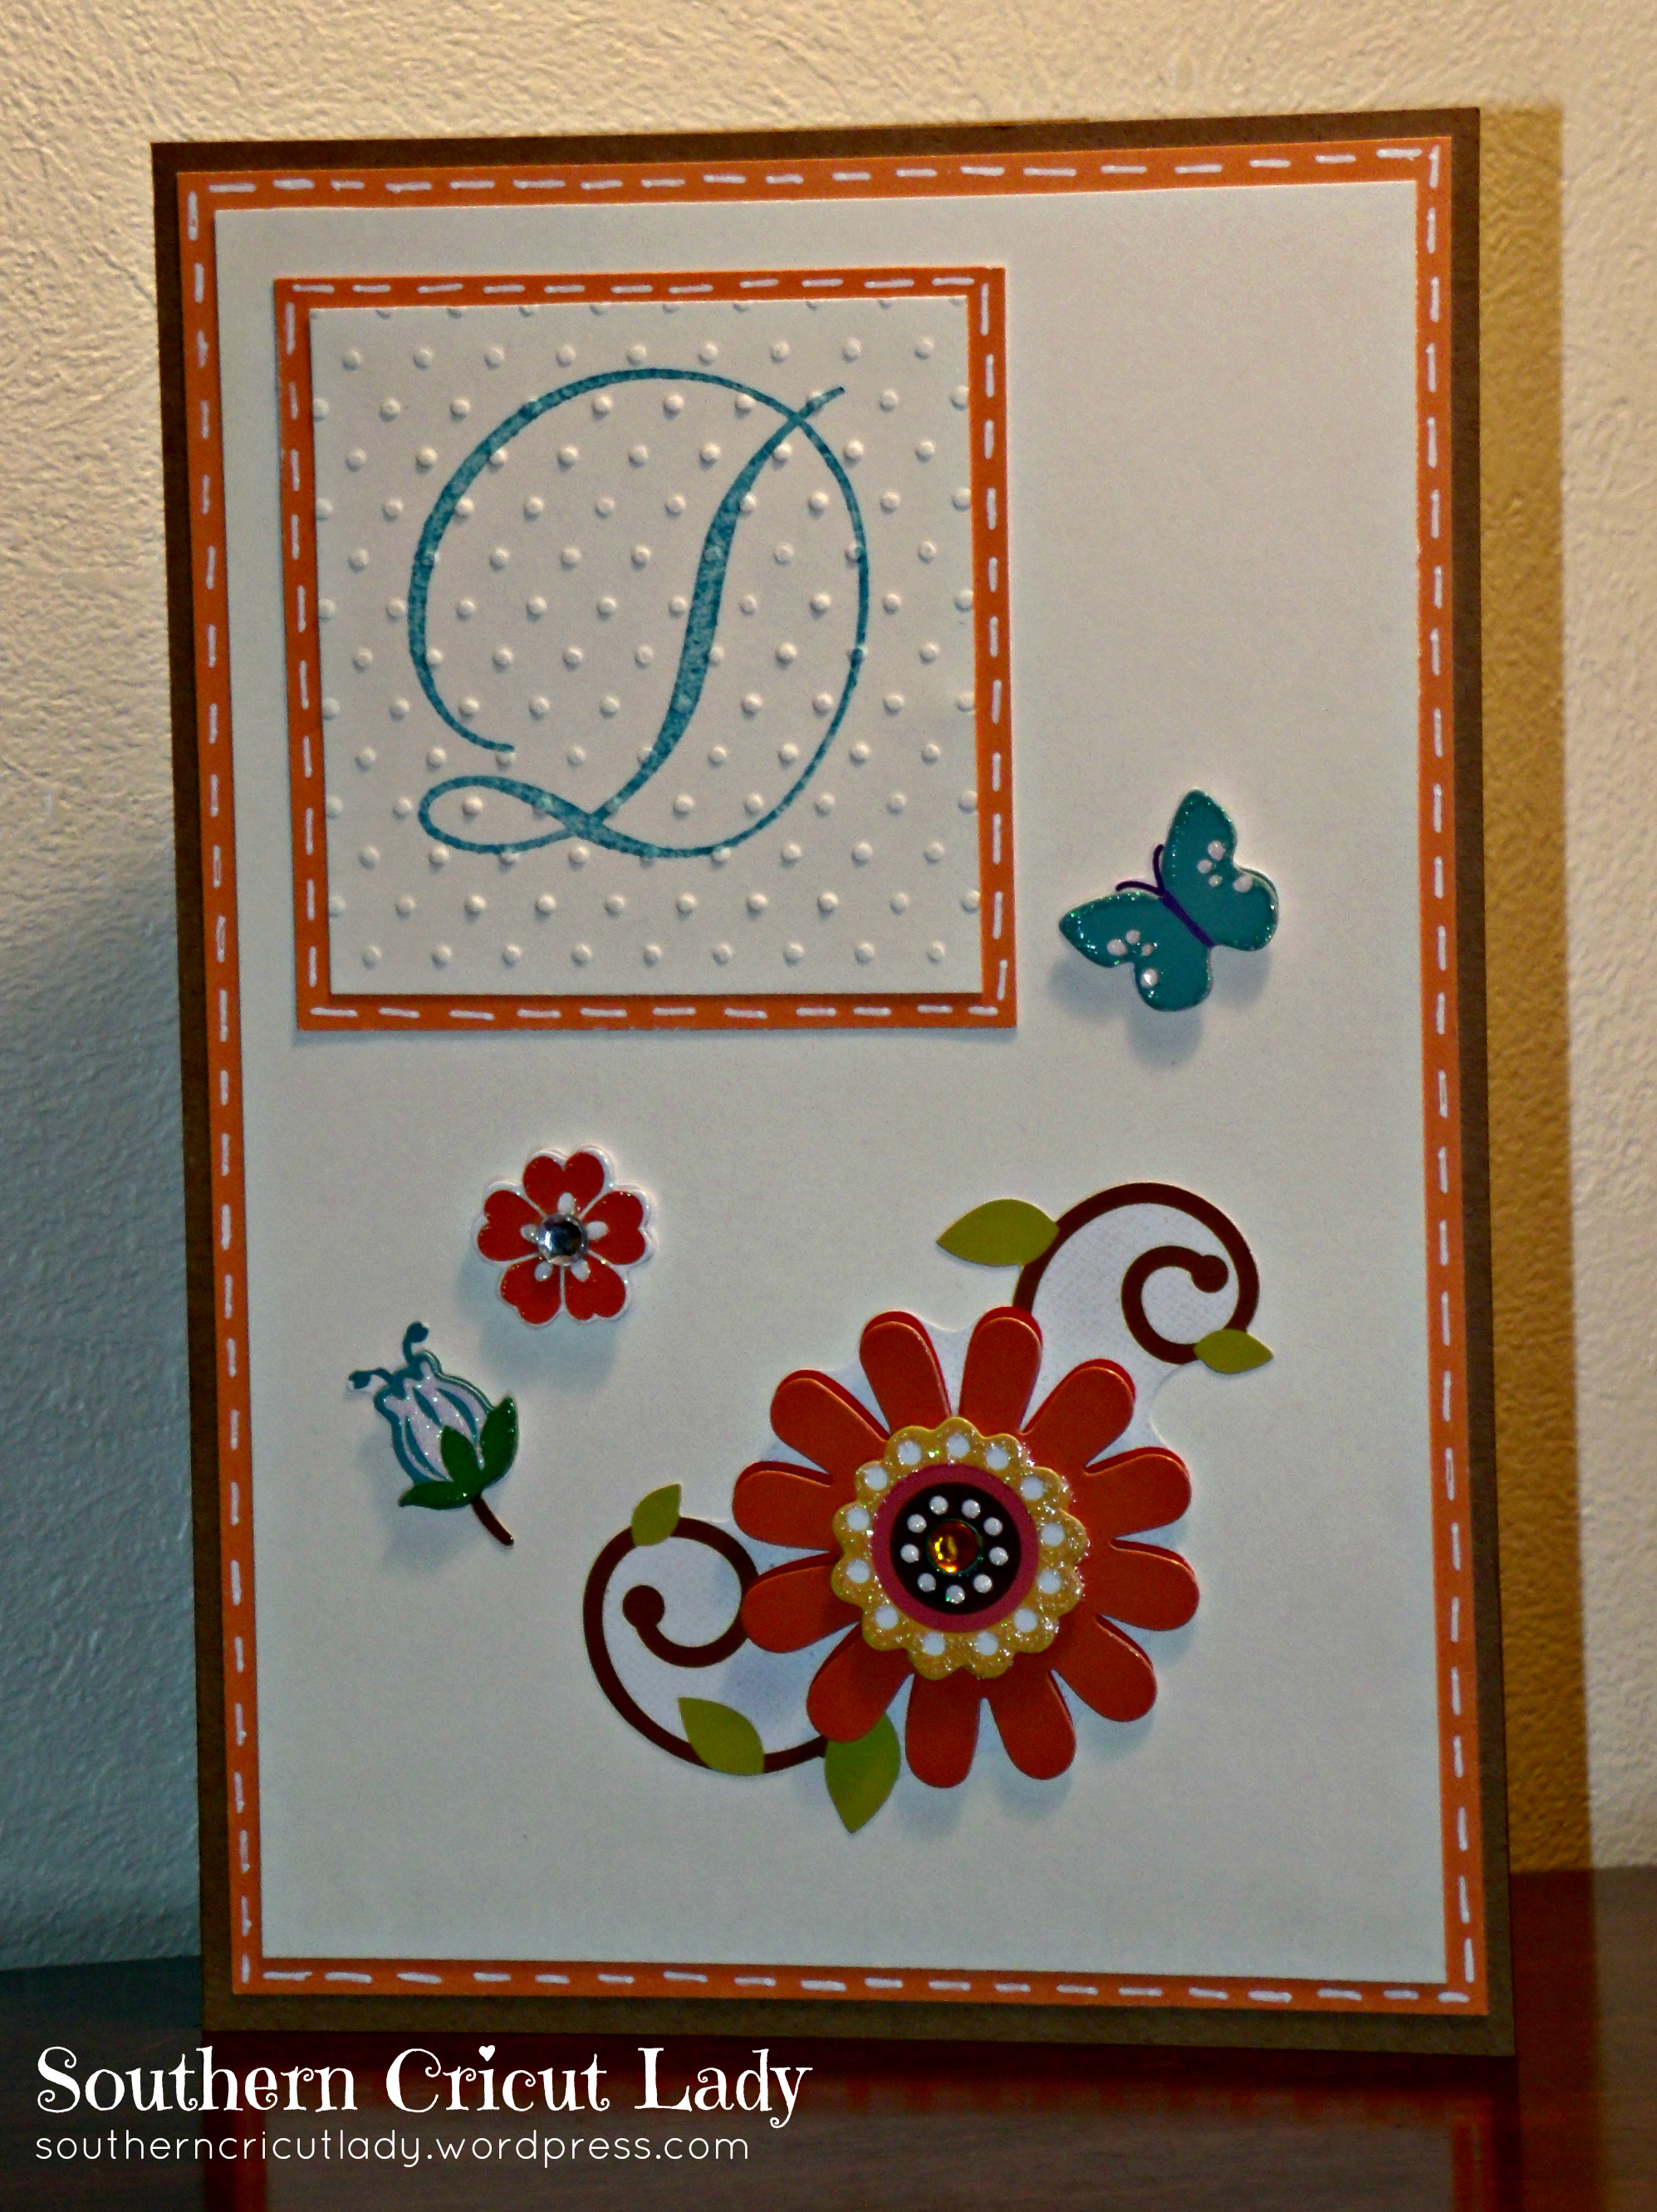 Southern Cricut Lady | …a journey of paper exploration and